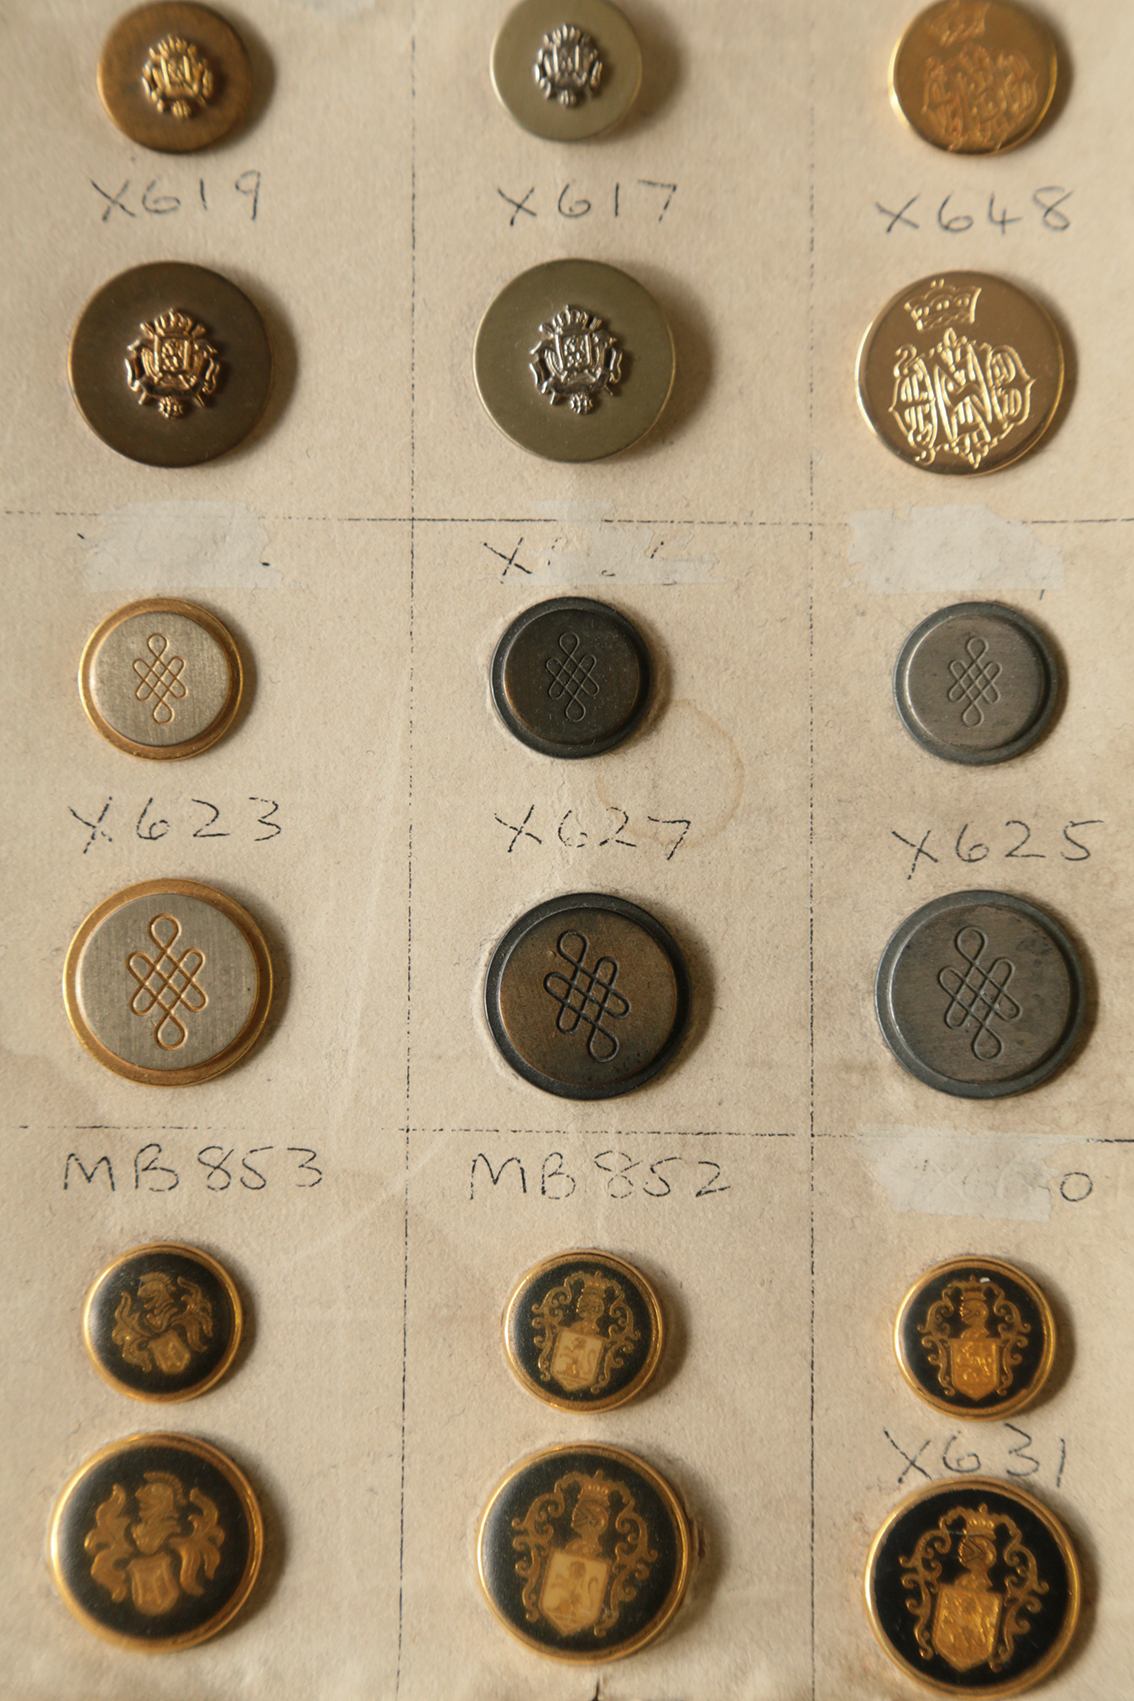 Johnson Tailor Buttons